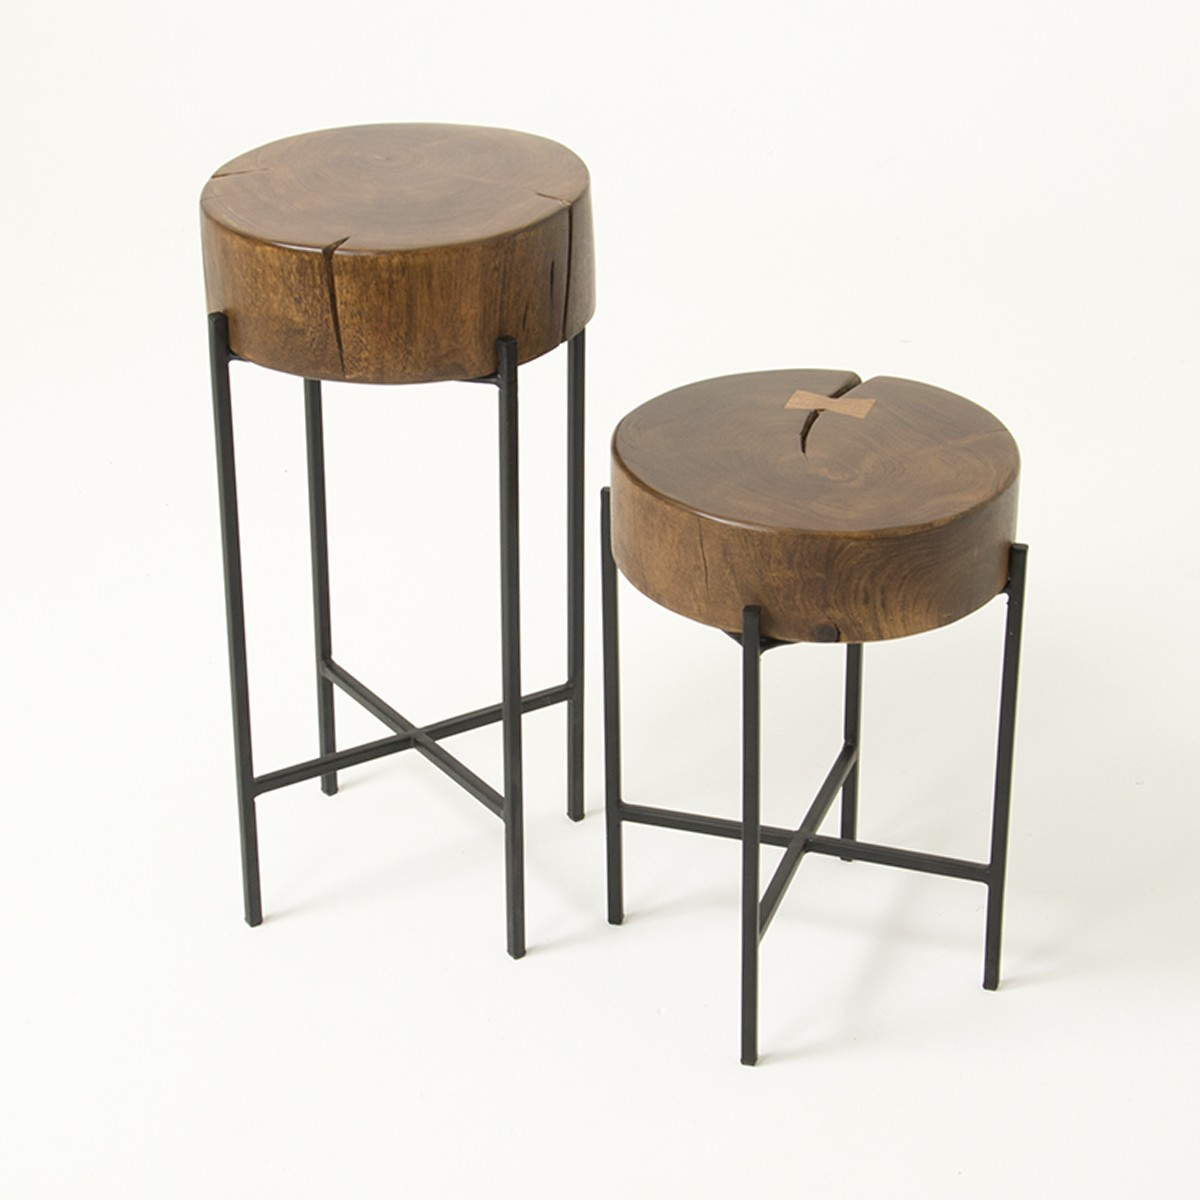 Image of: Organic Round Nesting Tables